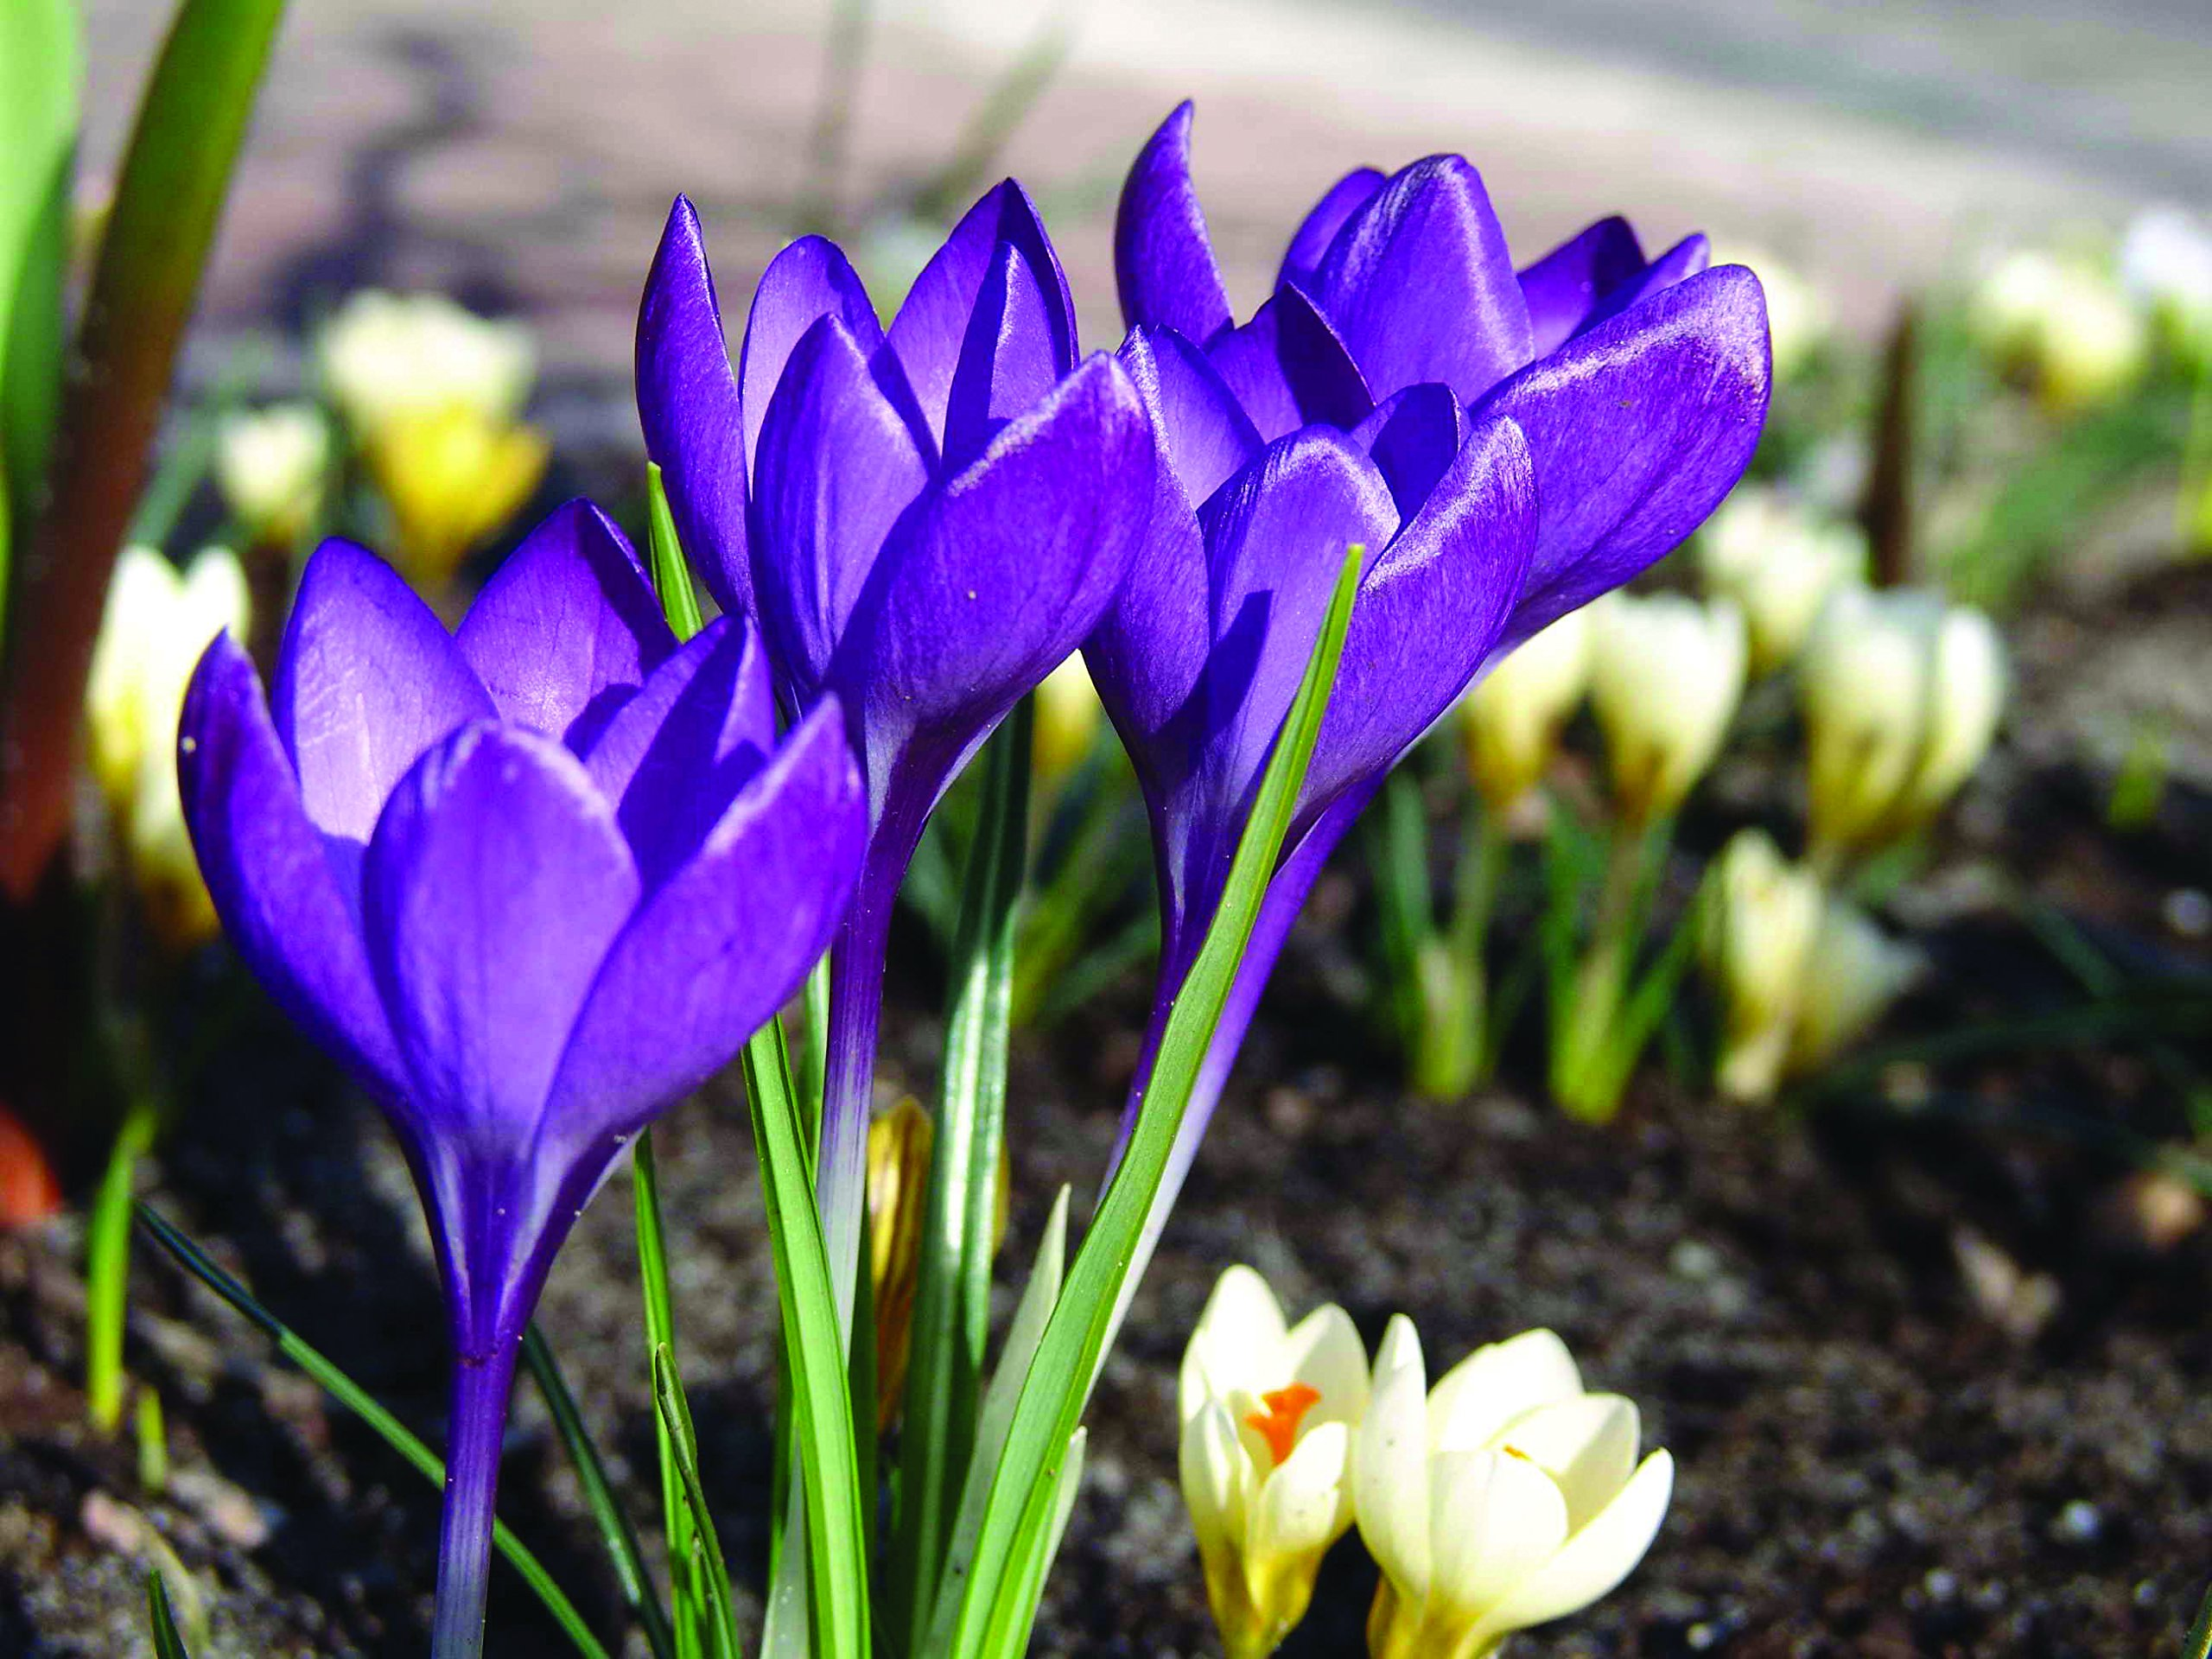 Burpee's Barr's Purple Crocus - 15 Large Flower Bulbs | 9 - 11cm Bulb Diameter